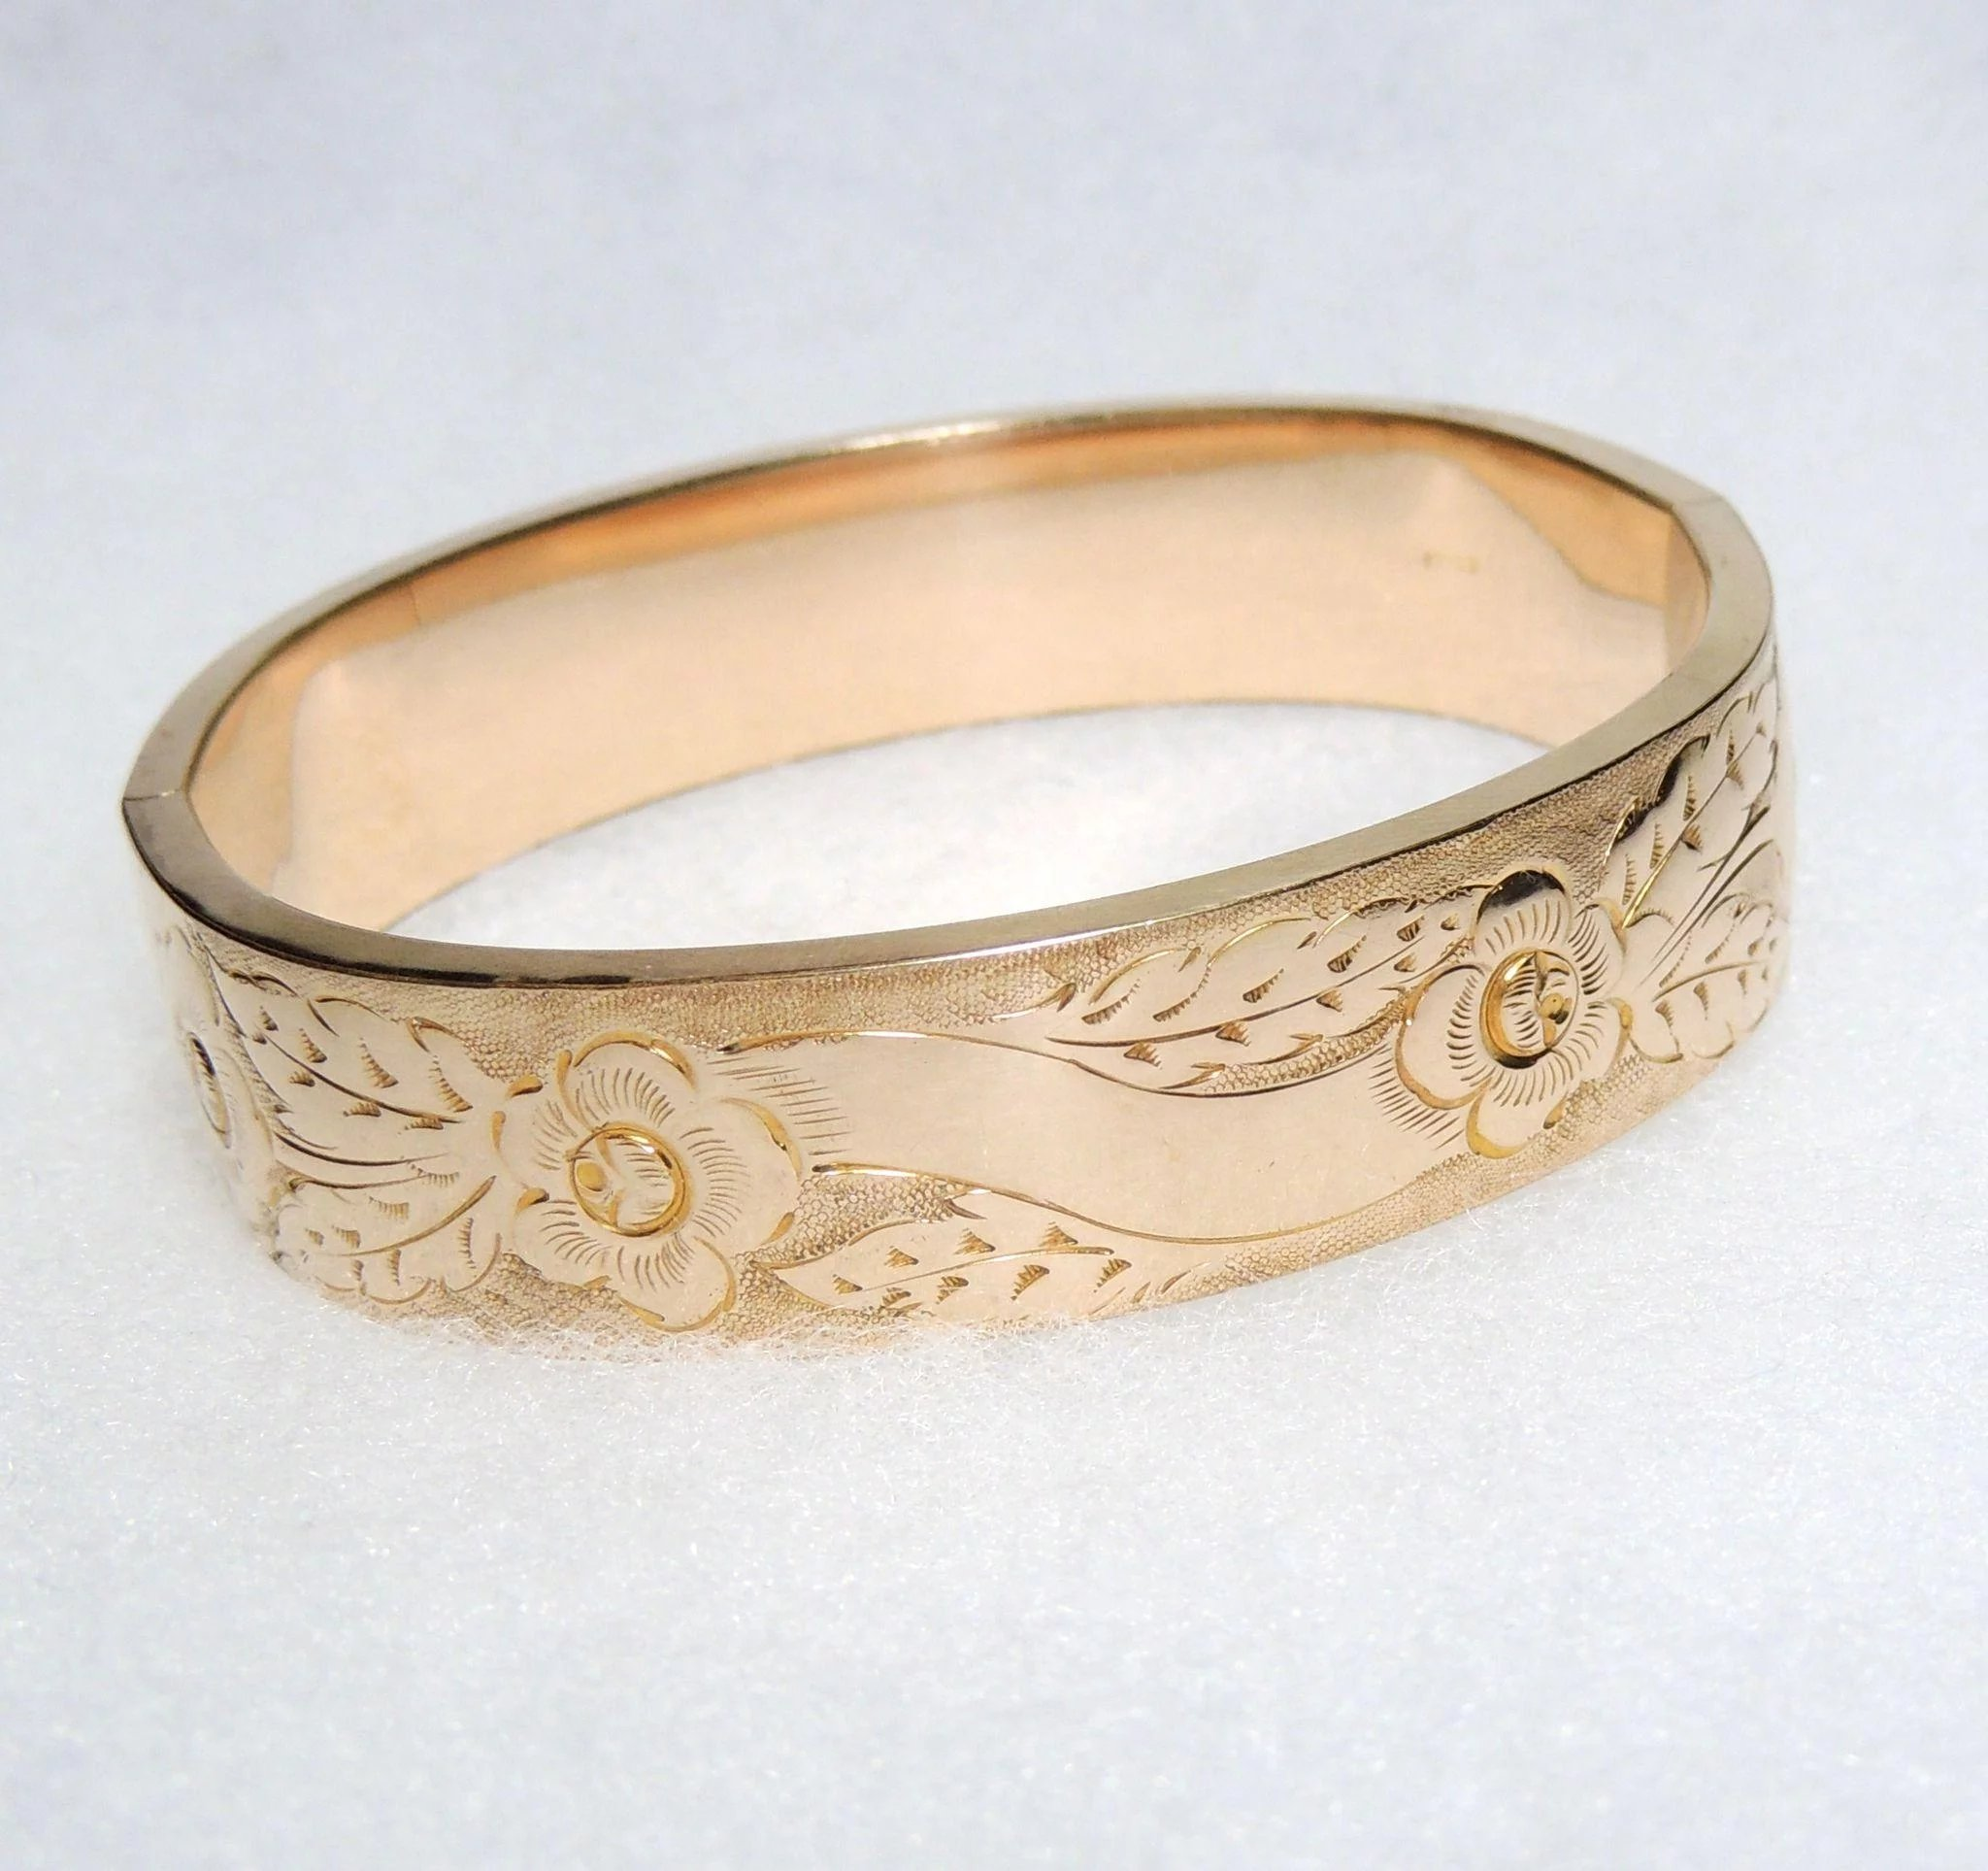 edwardian engraved expand to bangle click full bracelets bangles floral item wide gold bracelet victorian filled